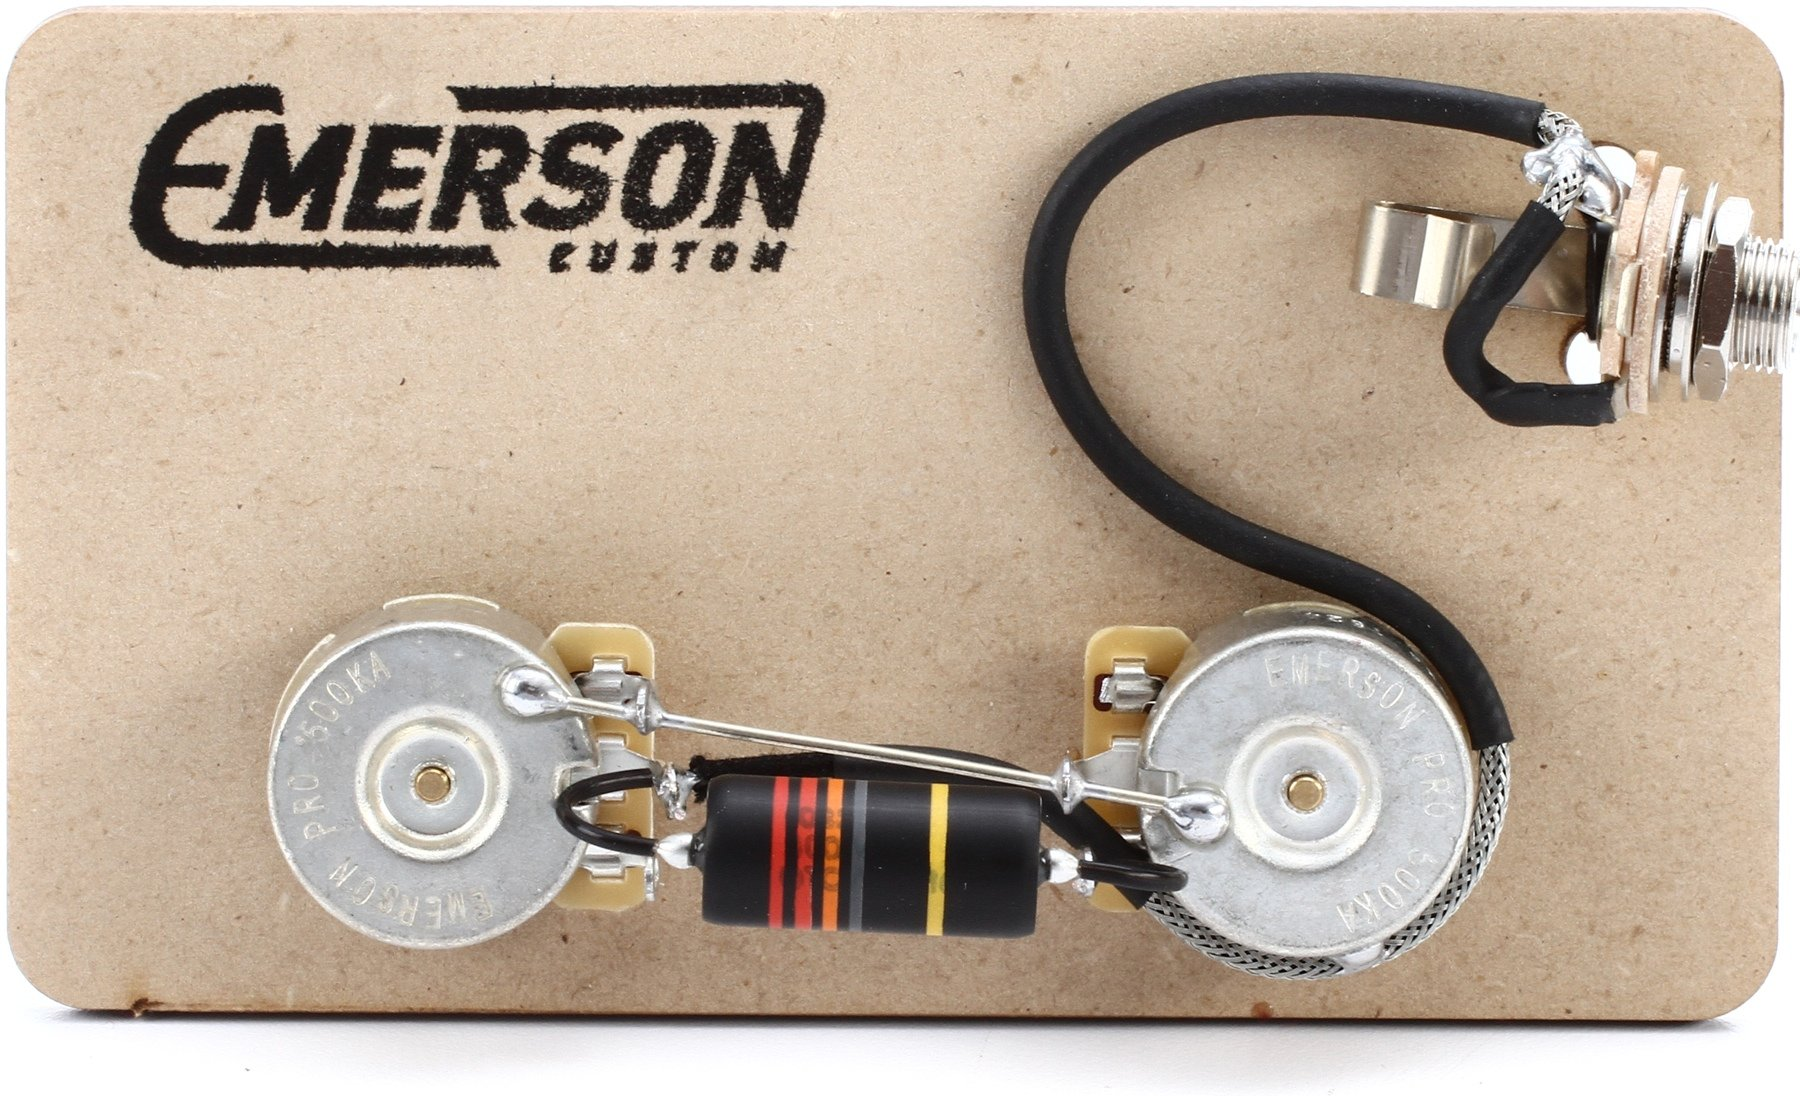 LPBBJR xlarge emerson custom prewired kit for gibson les paul junior sweetwater les paul junior wiring diagram at bakdesigns.co